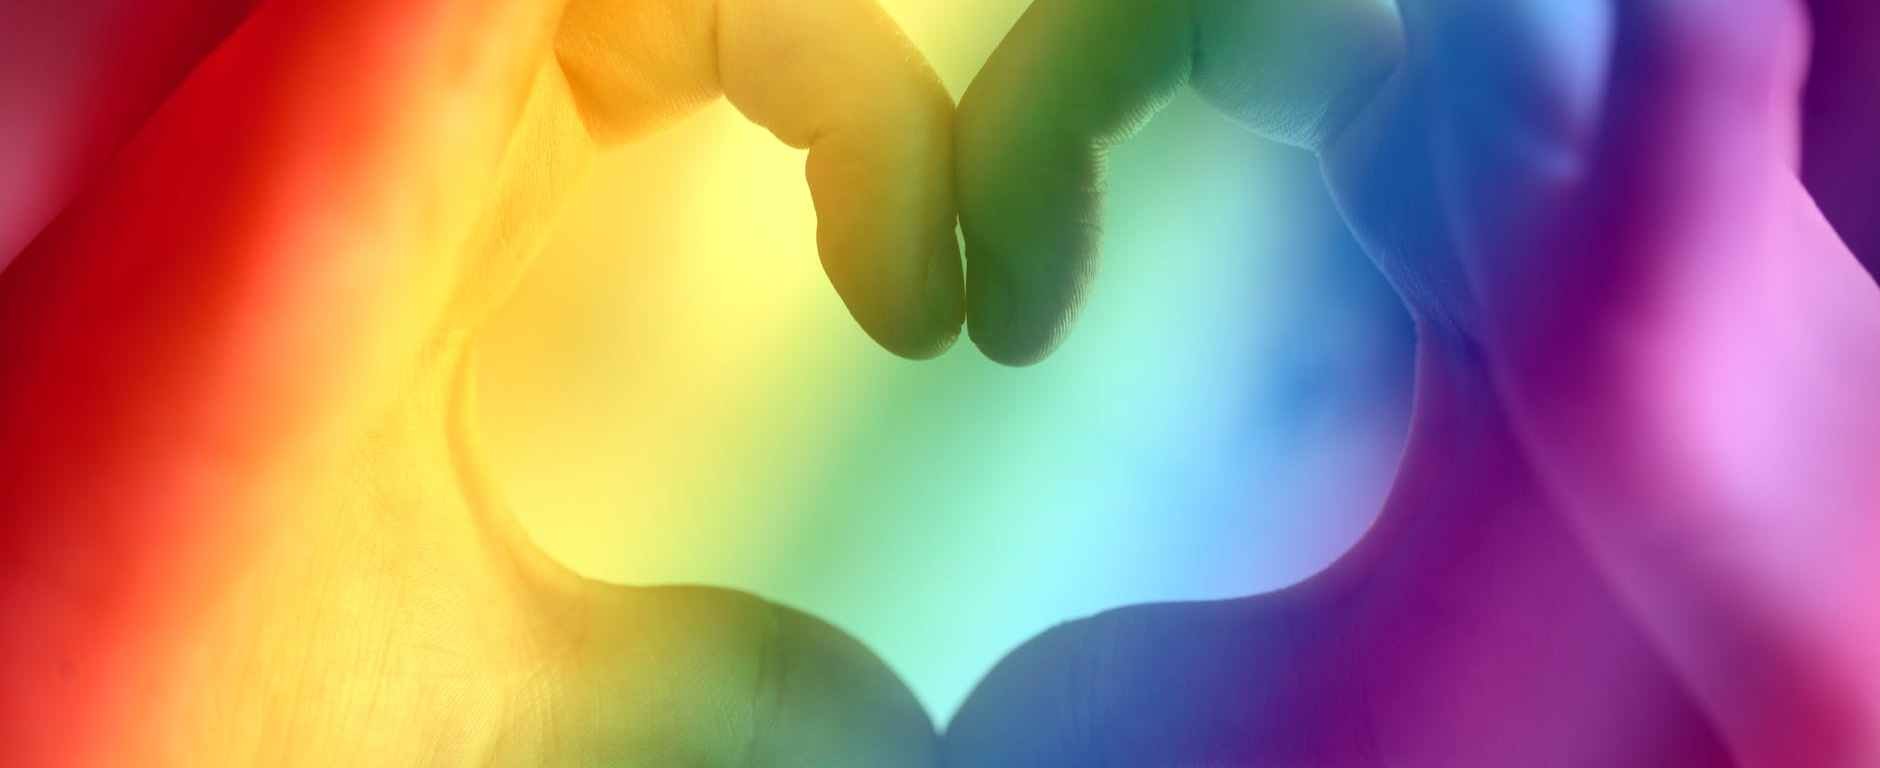 person s hand forming heart